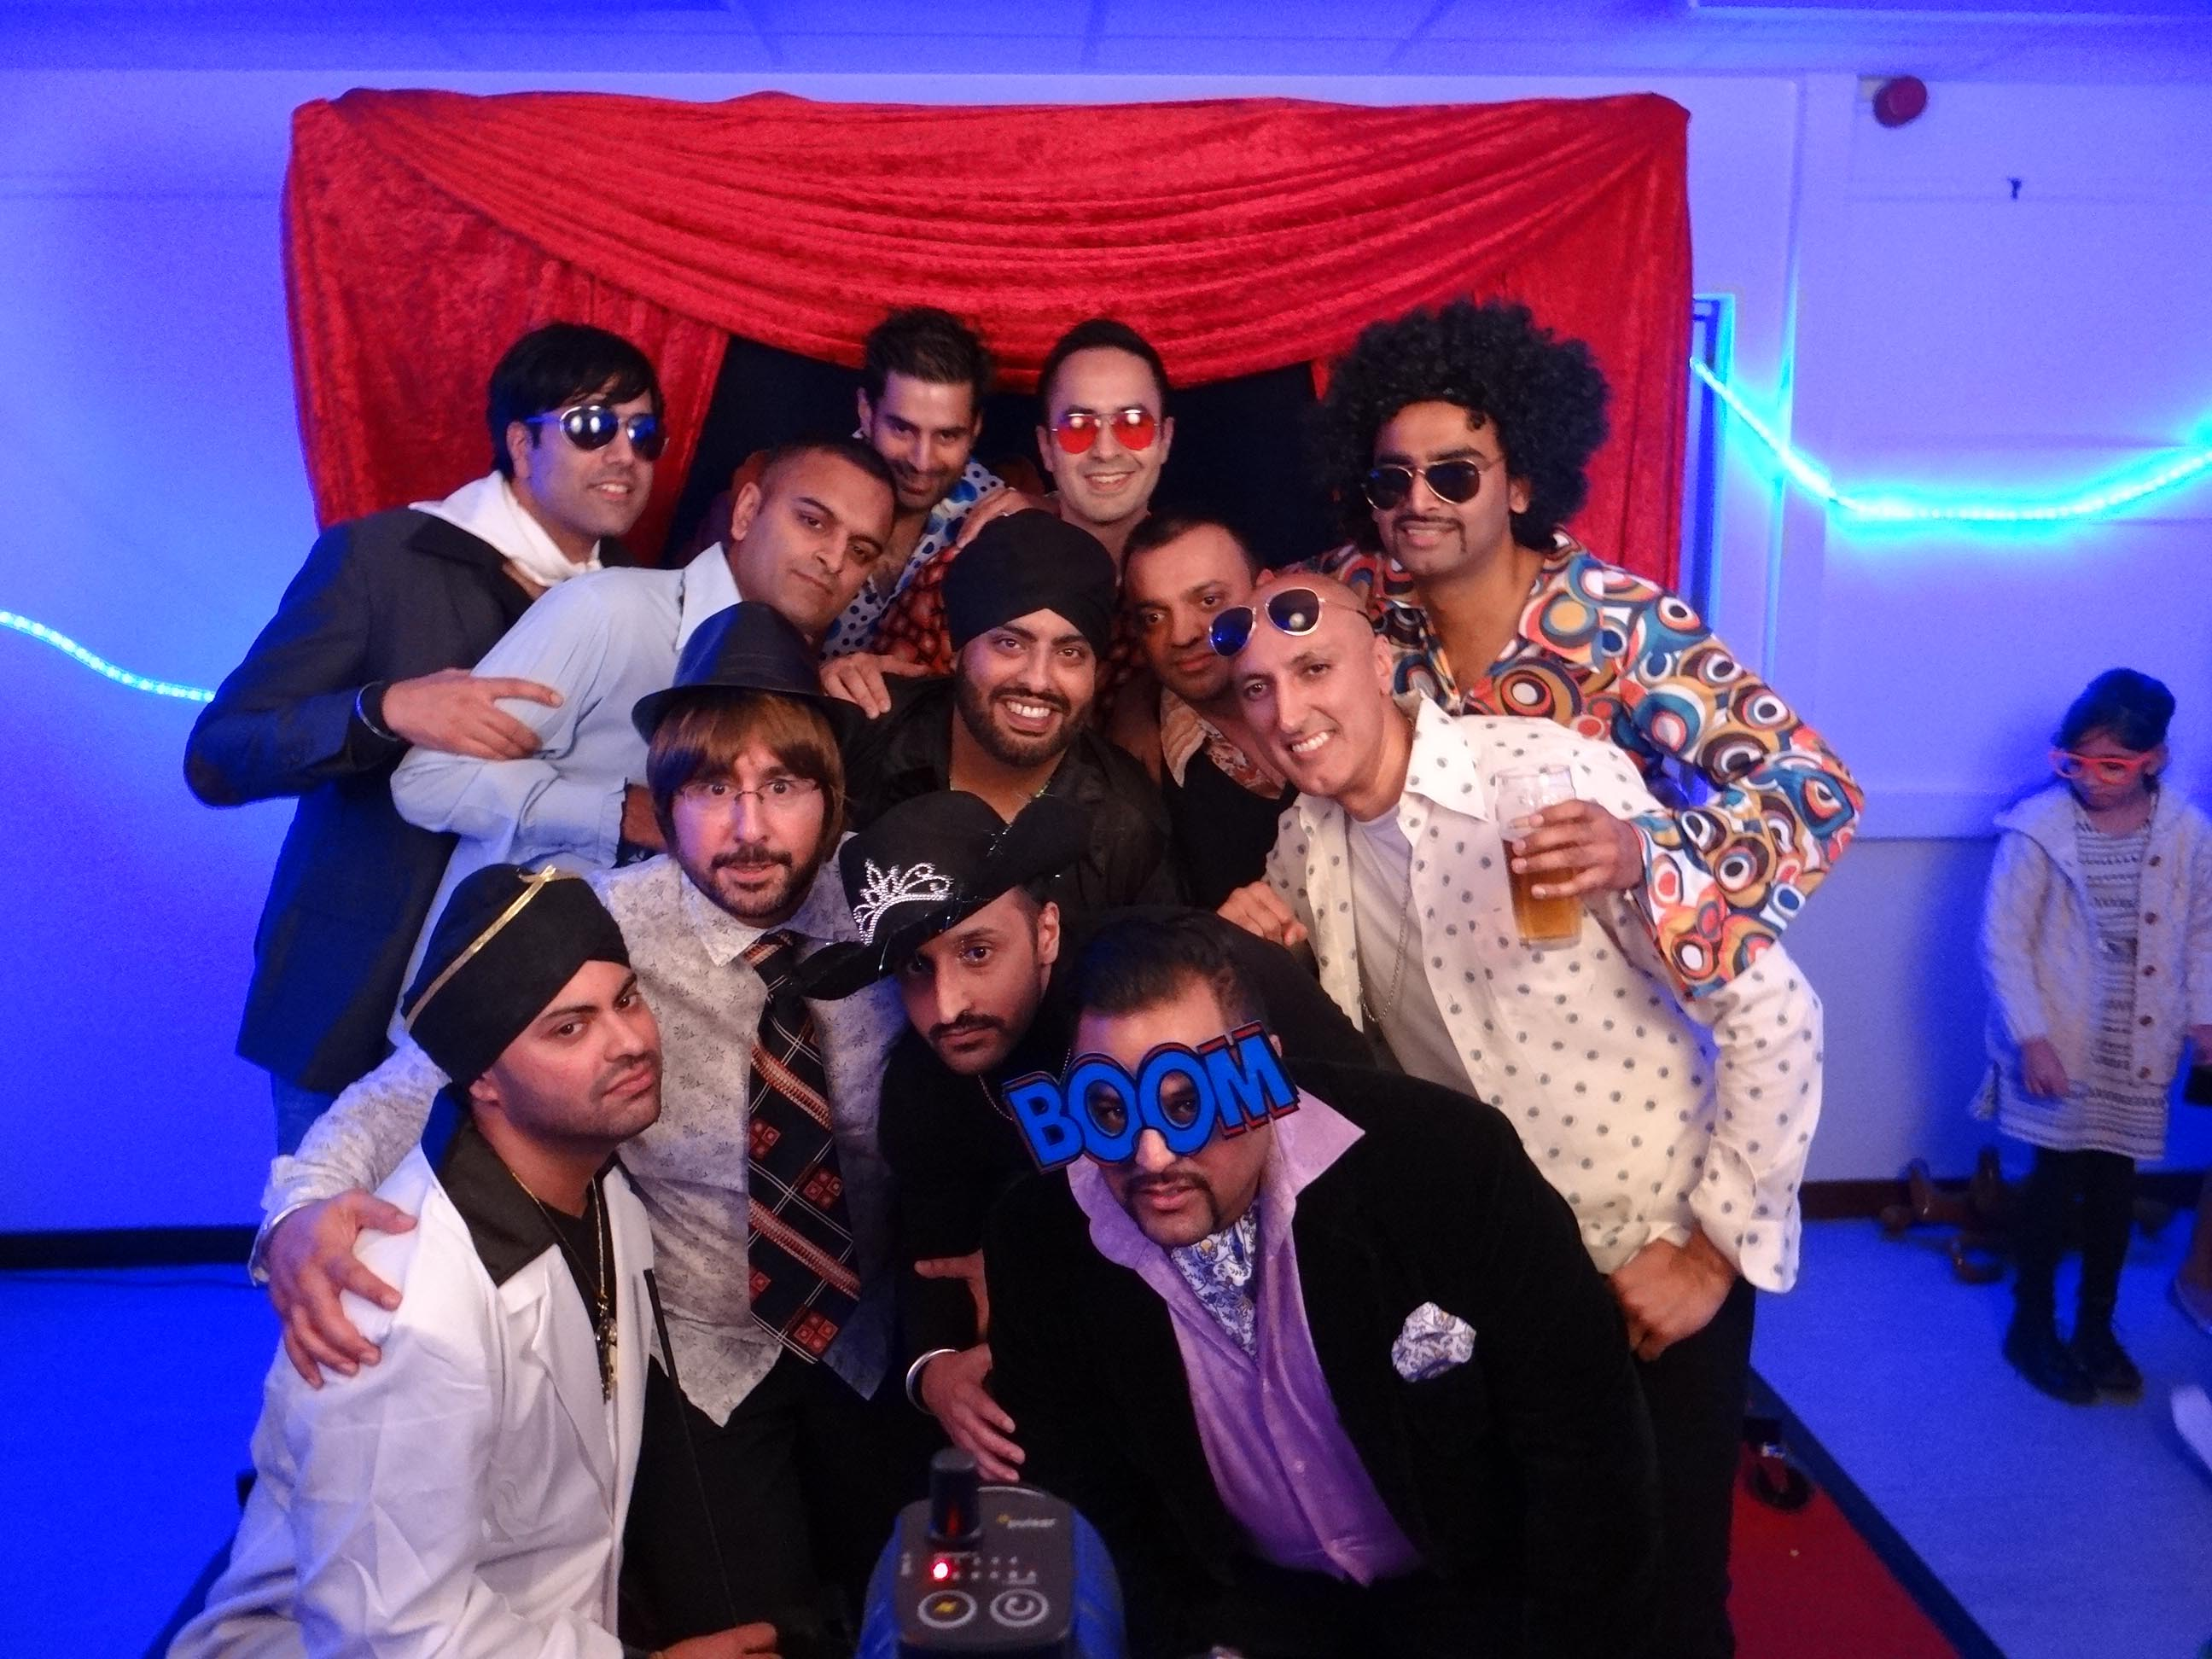 Bollywood Photo Booth Chichester